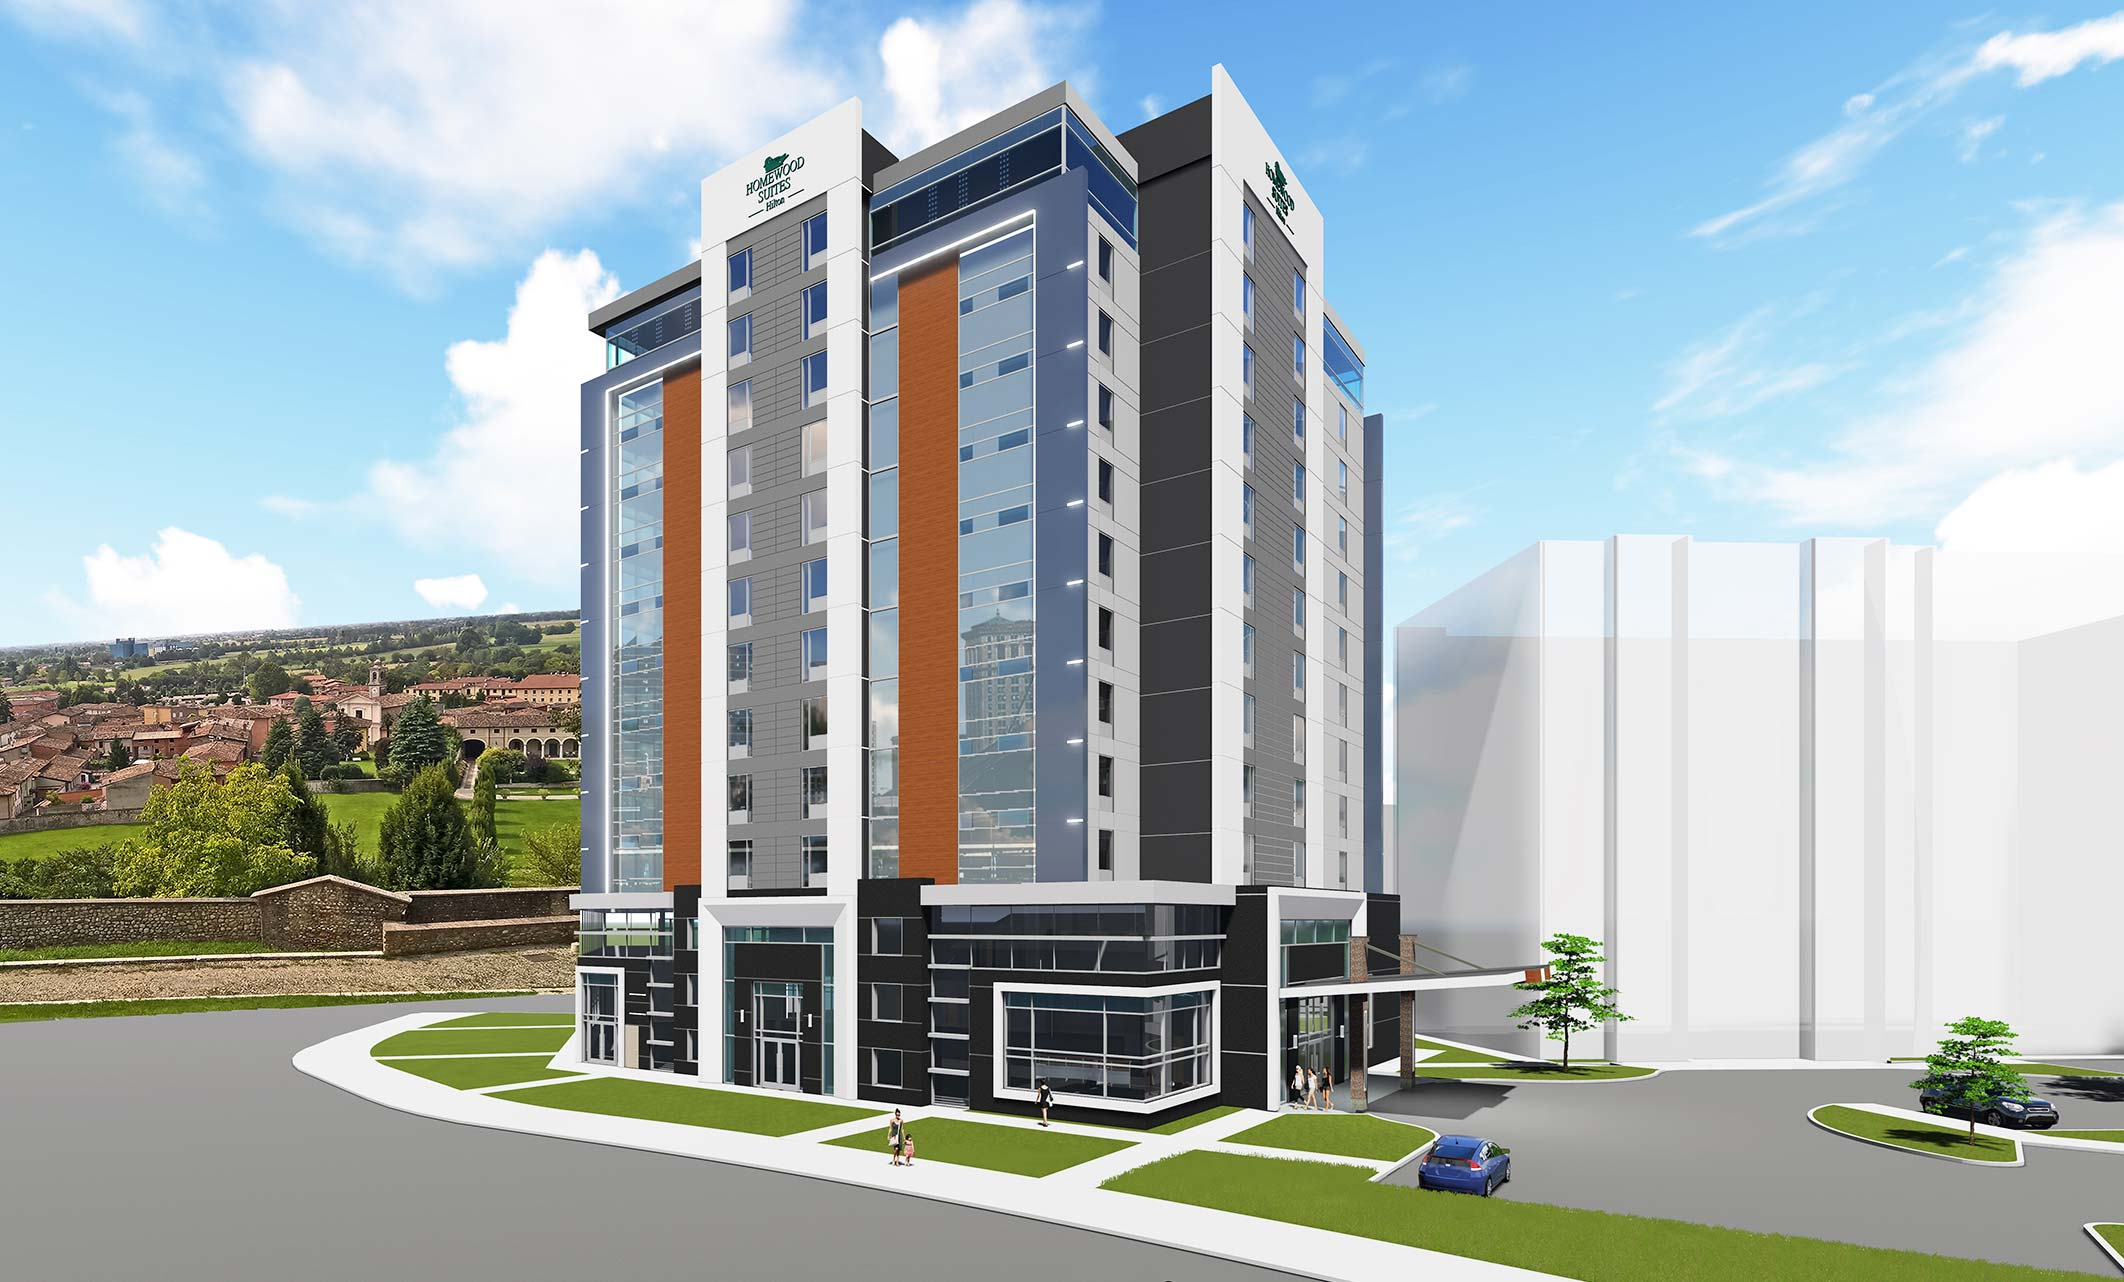 Homewood and Suites, St. Johns